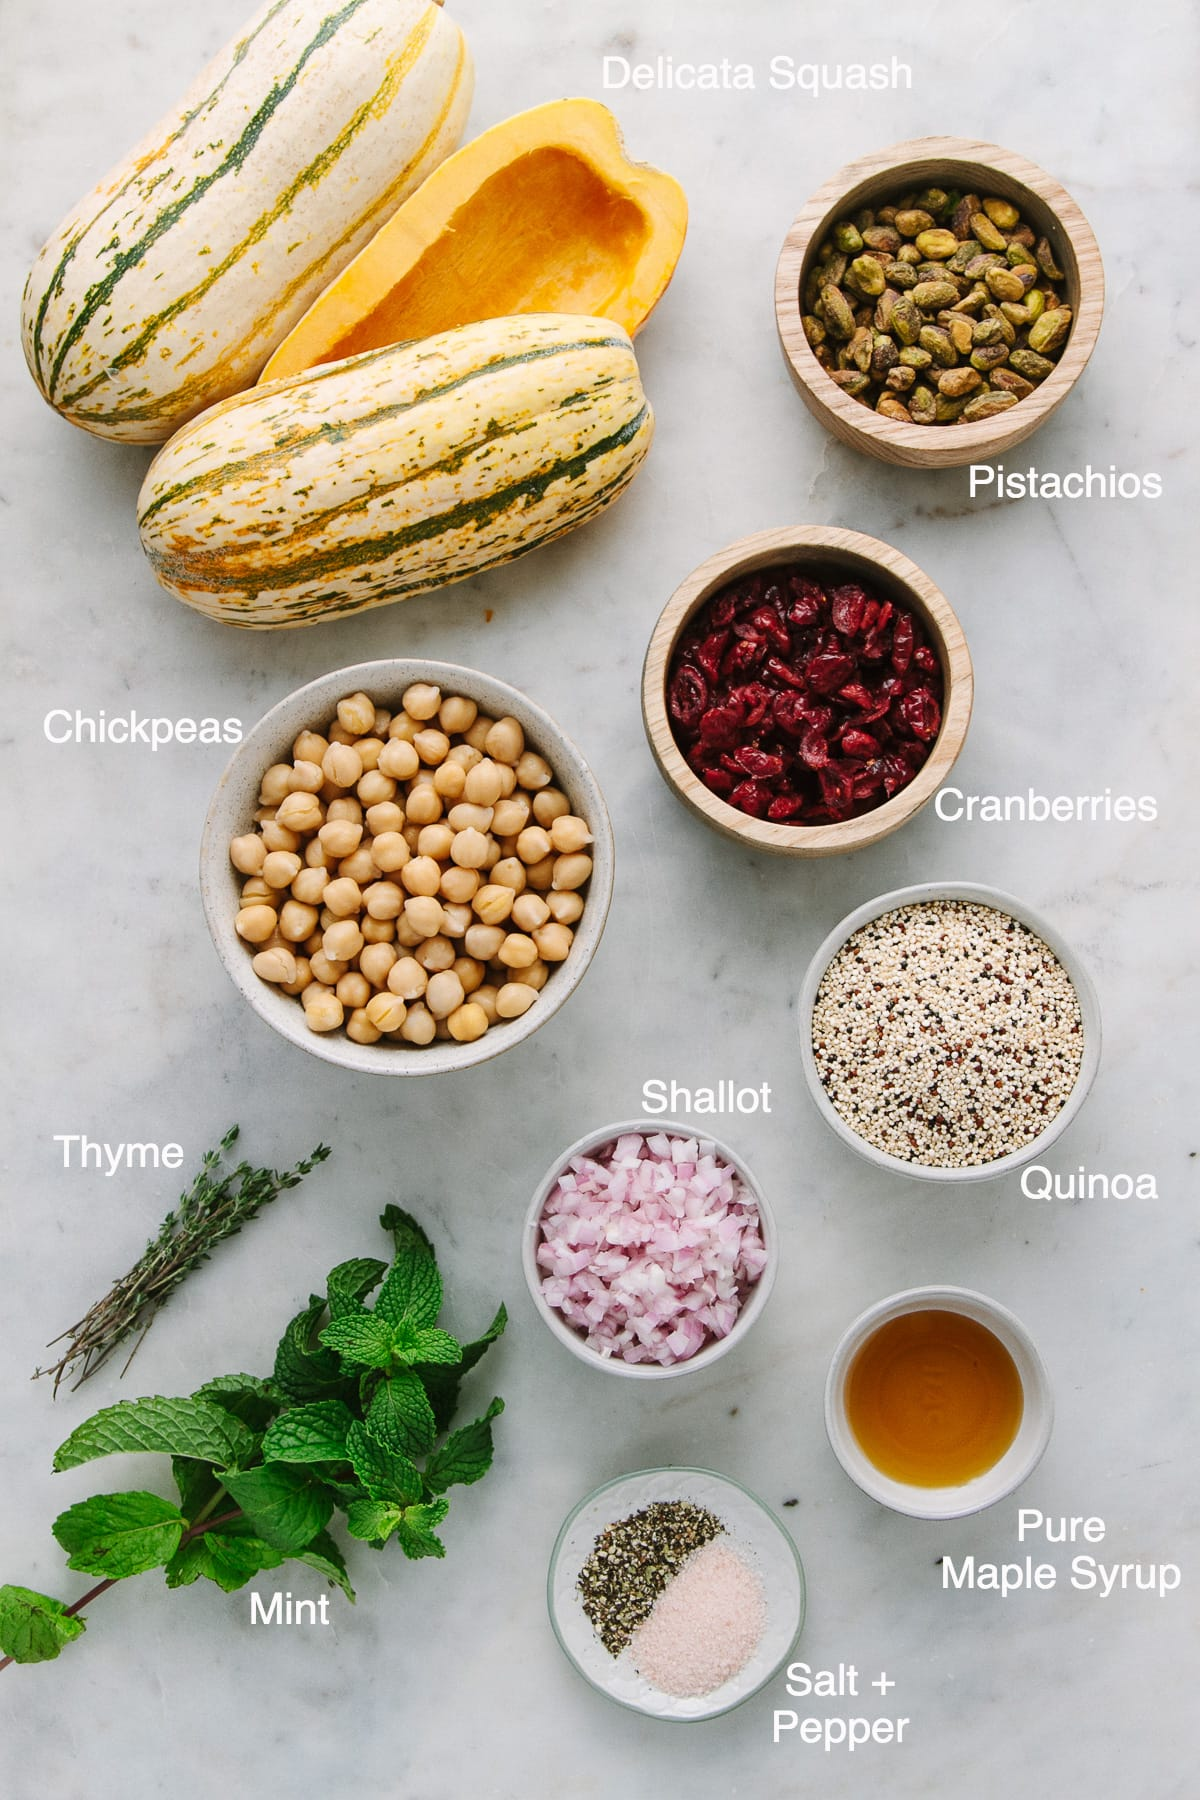 top down view of ingredients used to make stuffed delicata squash with quinoa, chickpeas, cranberries and pistachios.